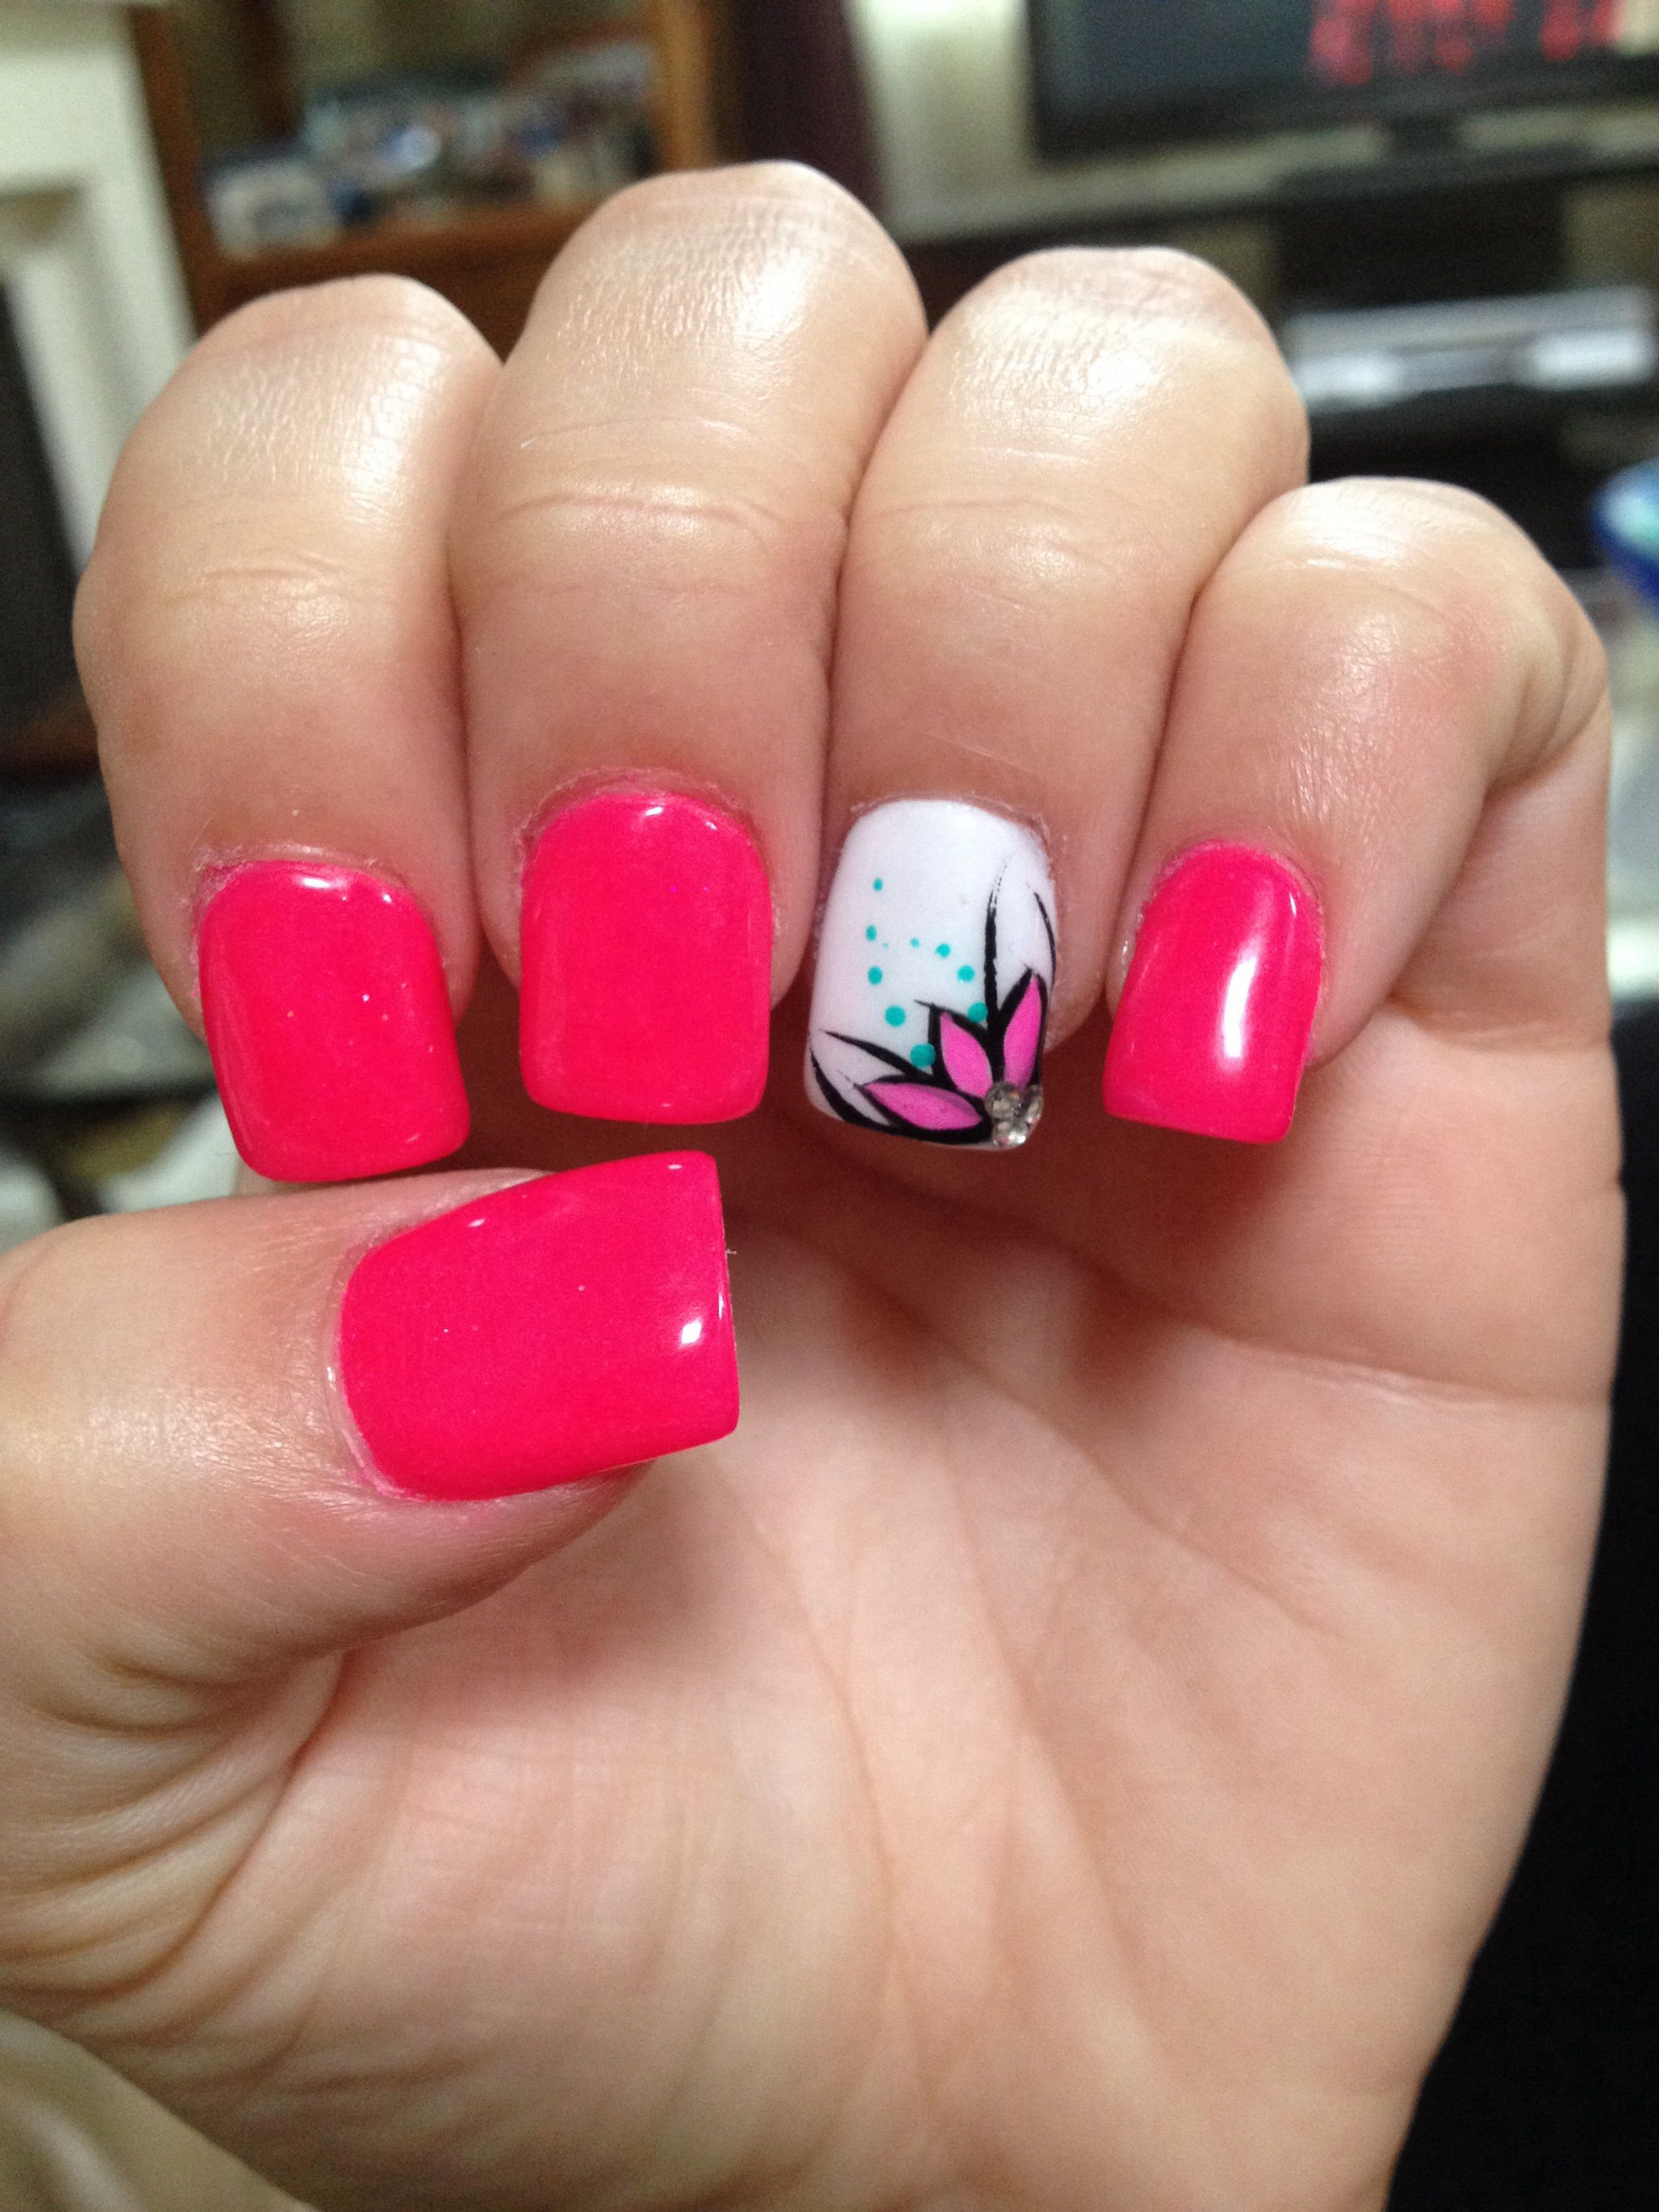 Hot Pink Nails With Flower Design Nail Polish